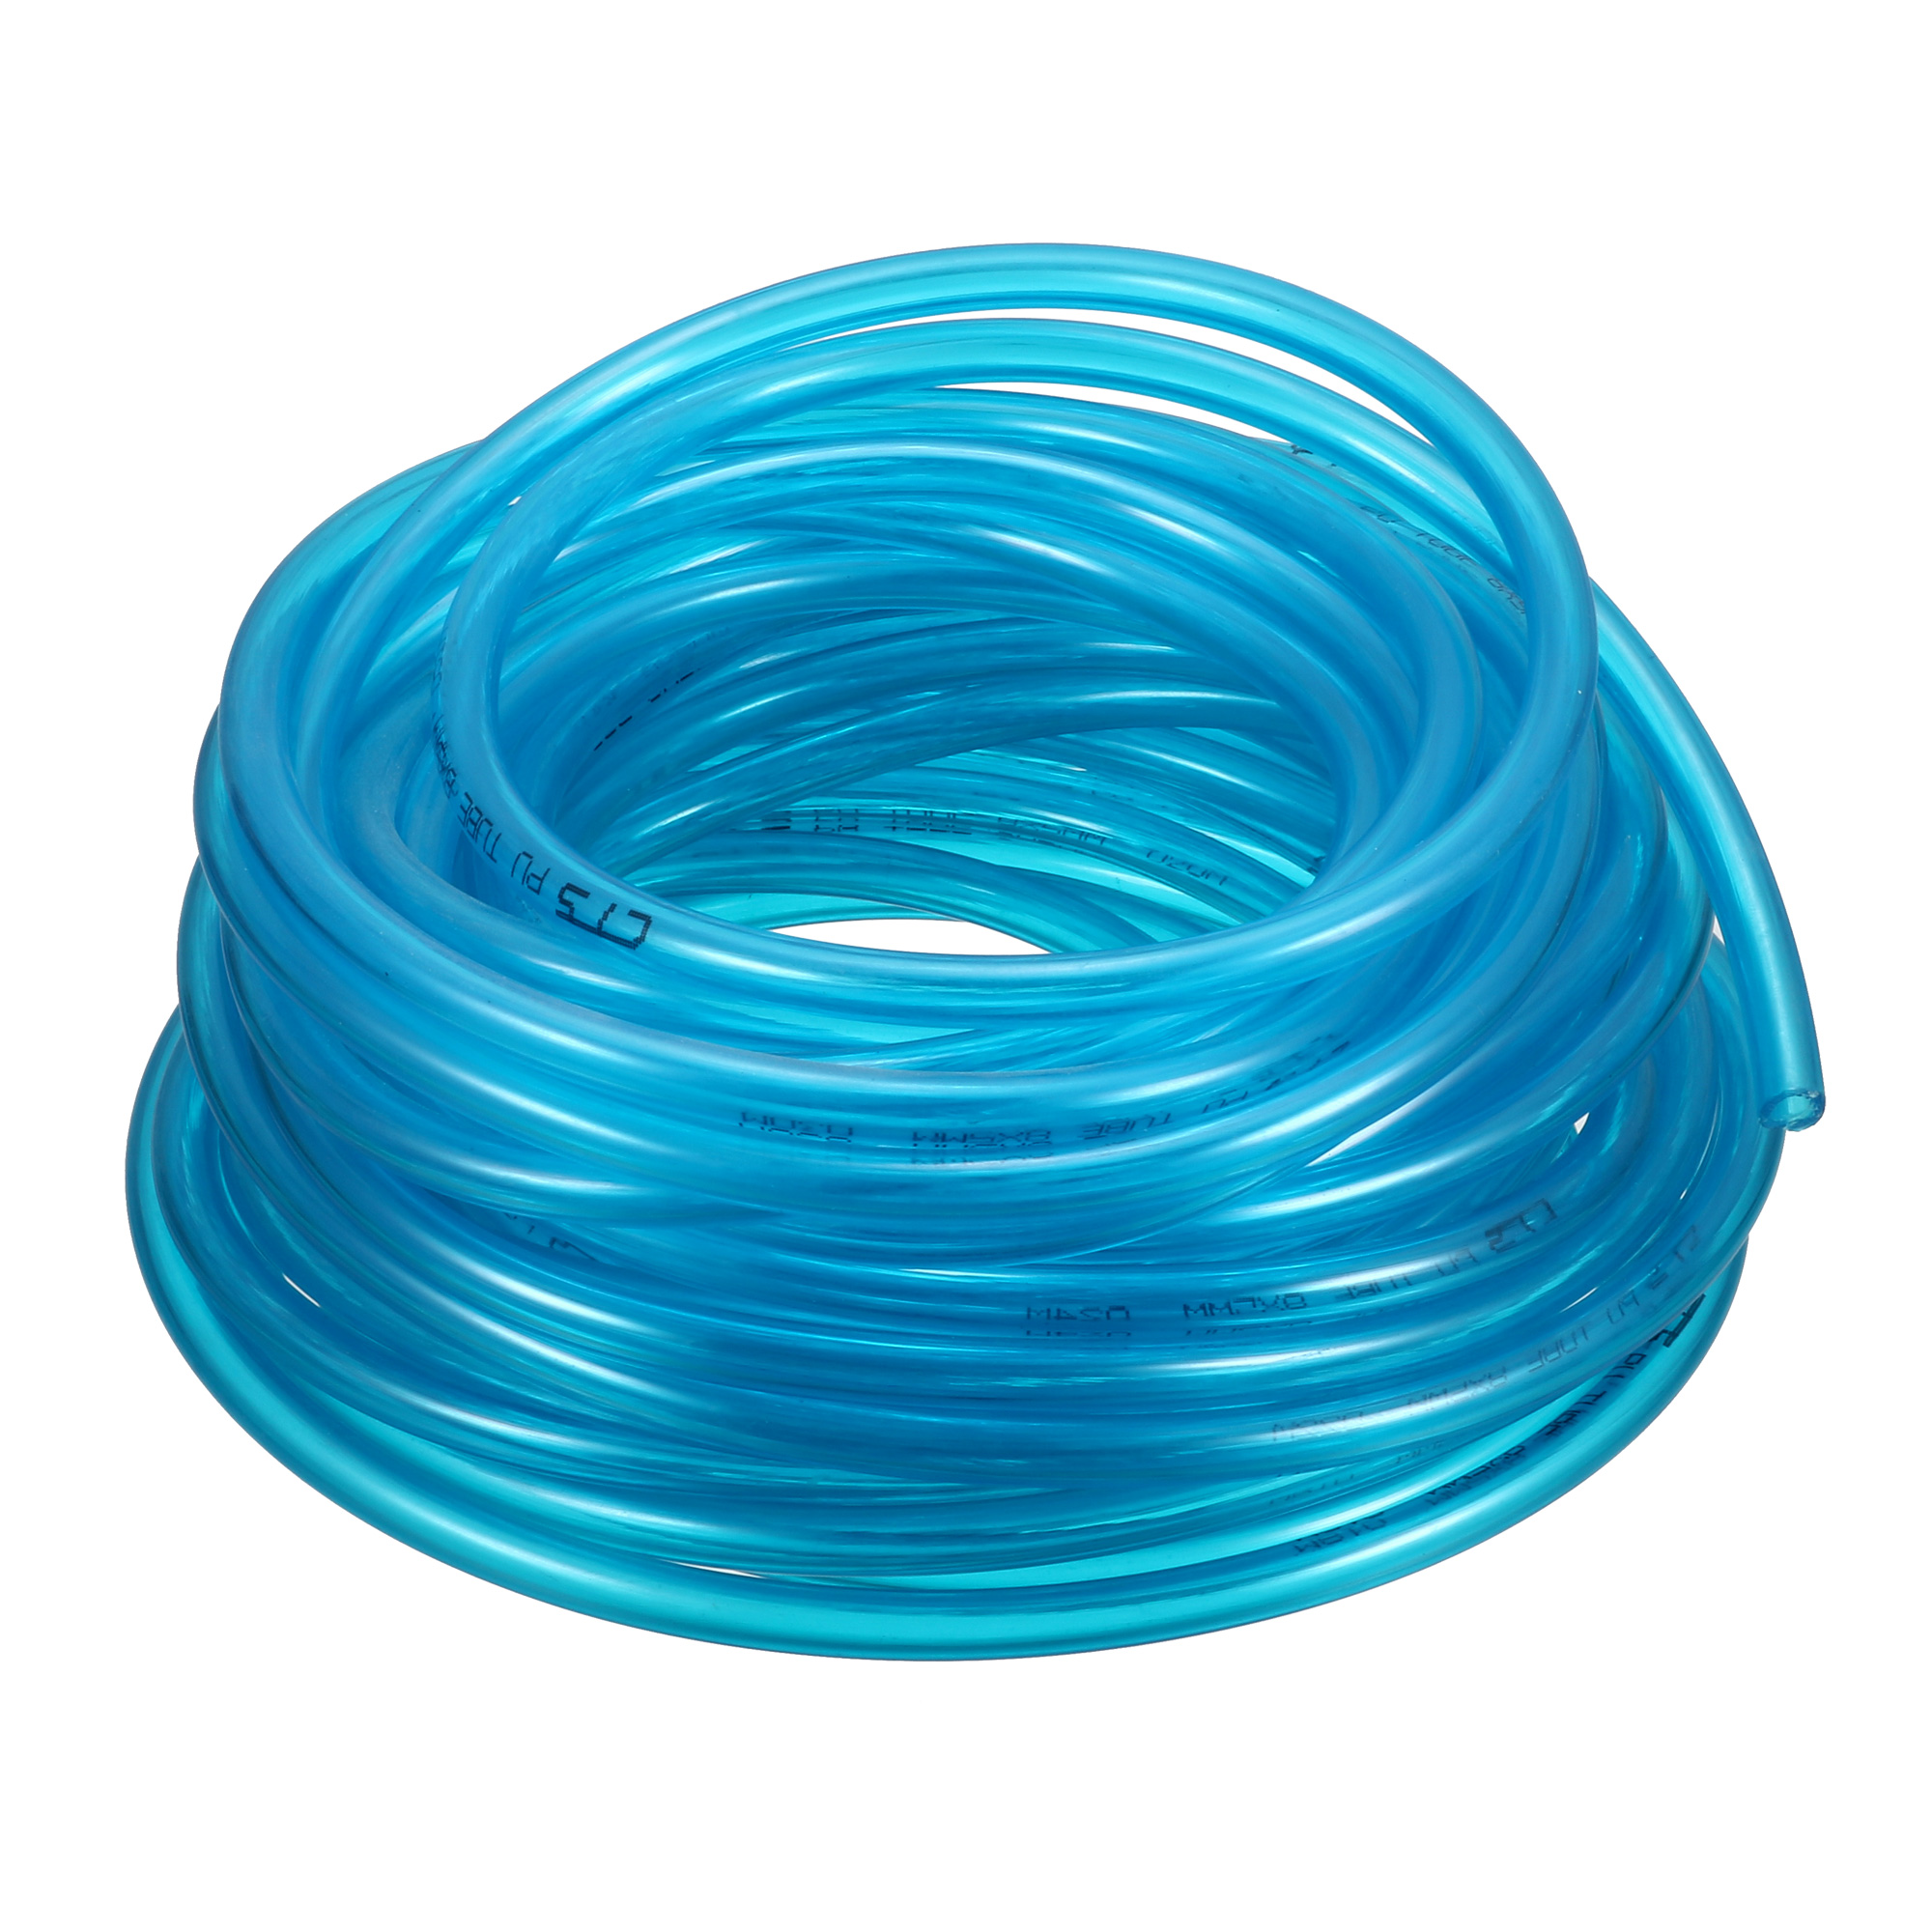 8mm OD x 5mm ID PU Pneumatic Air Tubing Pipe Hose 13 Meter 42.7ft Blue